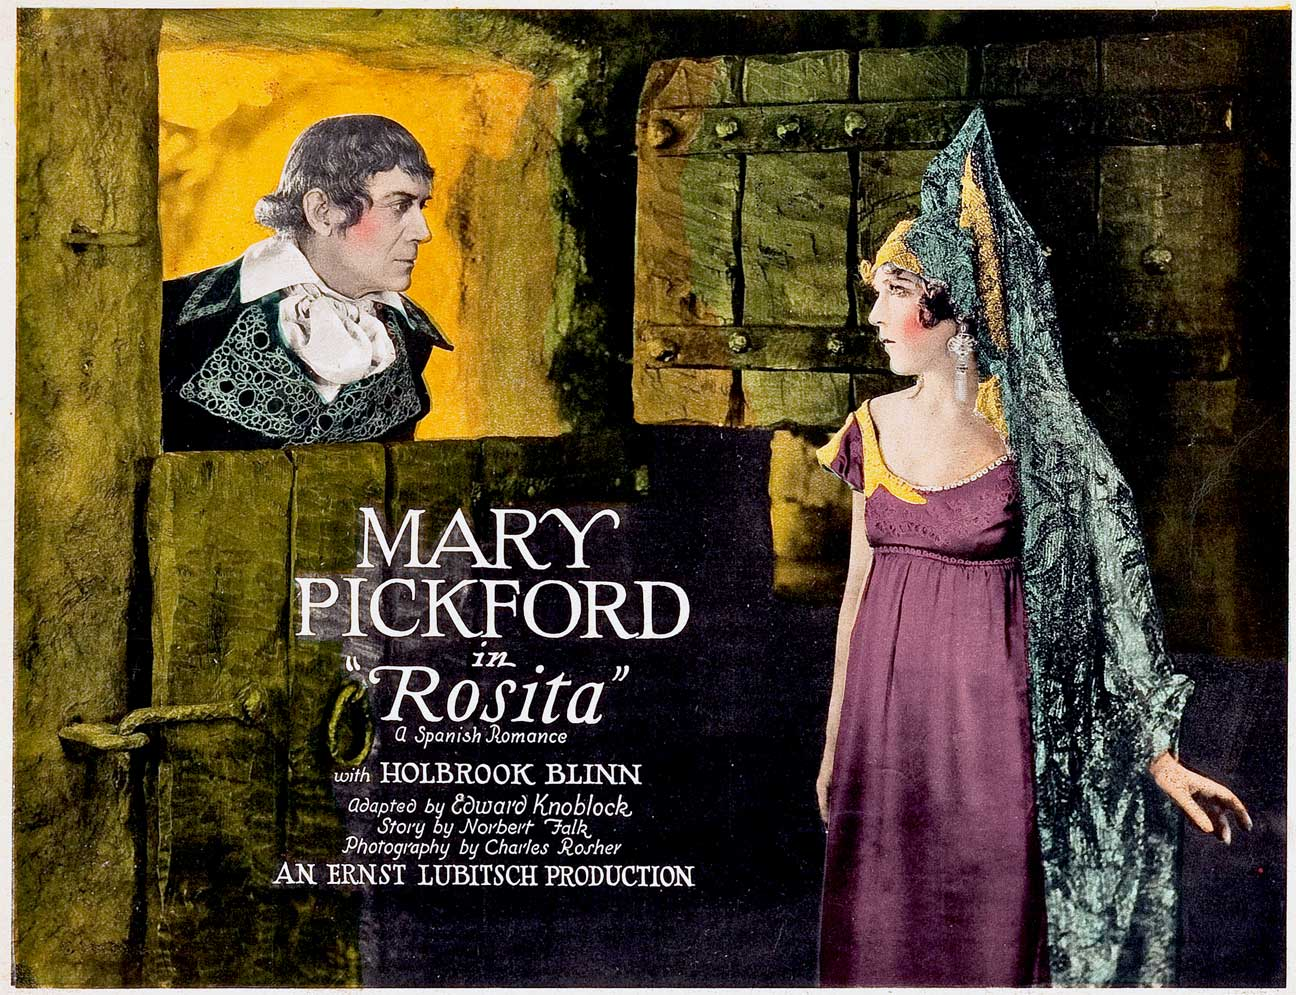 Mary Pickford Rosita